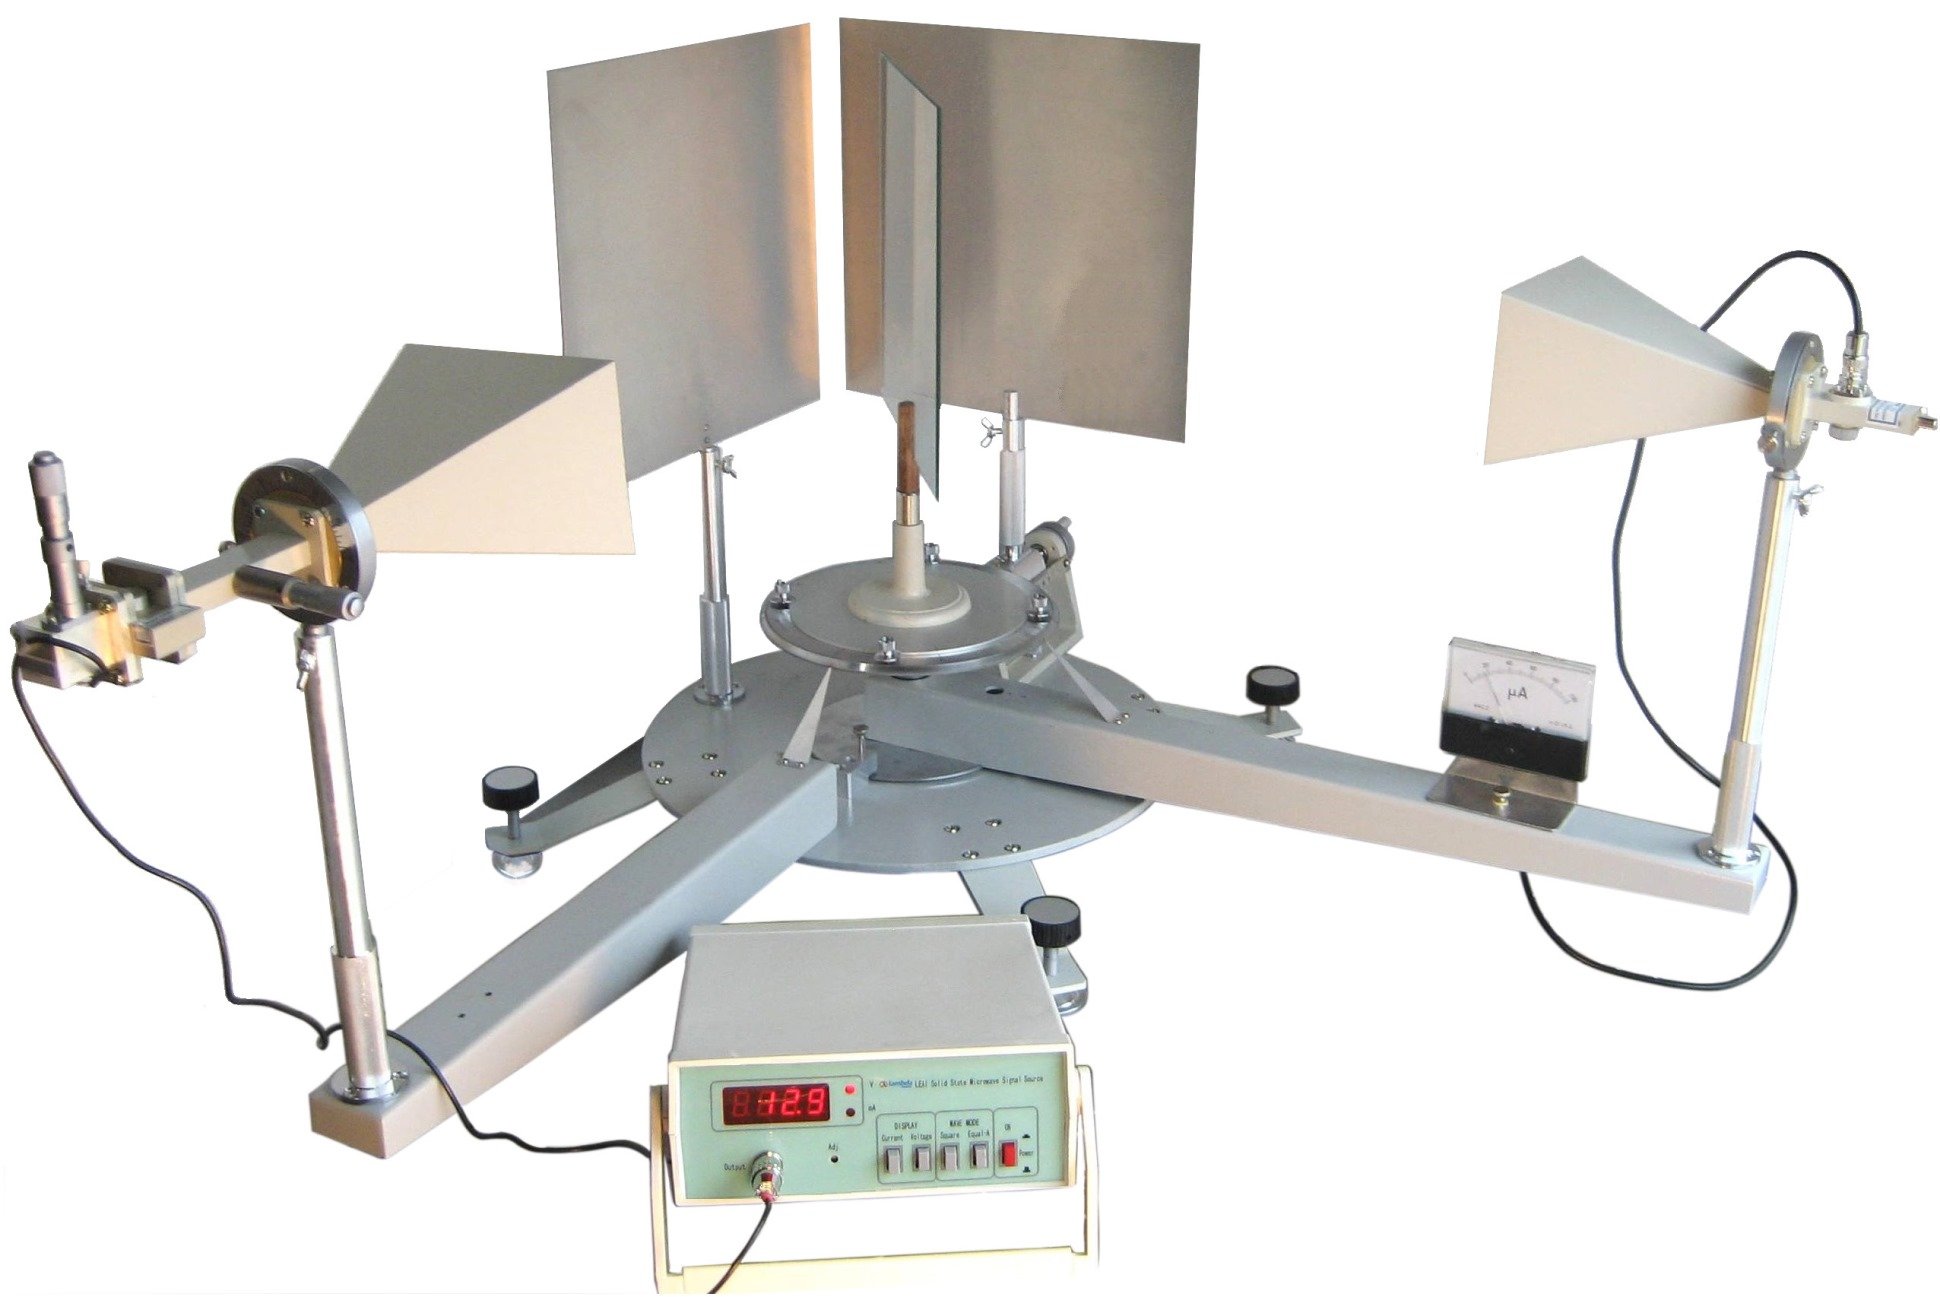 Physics Experiment Leei 62 Interference Diffraction Amp Polarization Of Microwave Advanced Model